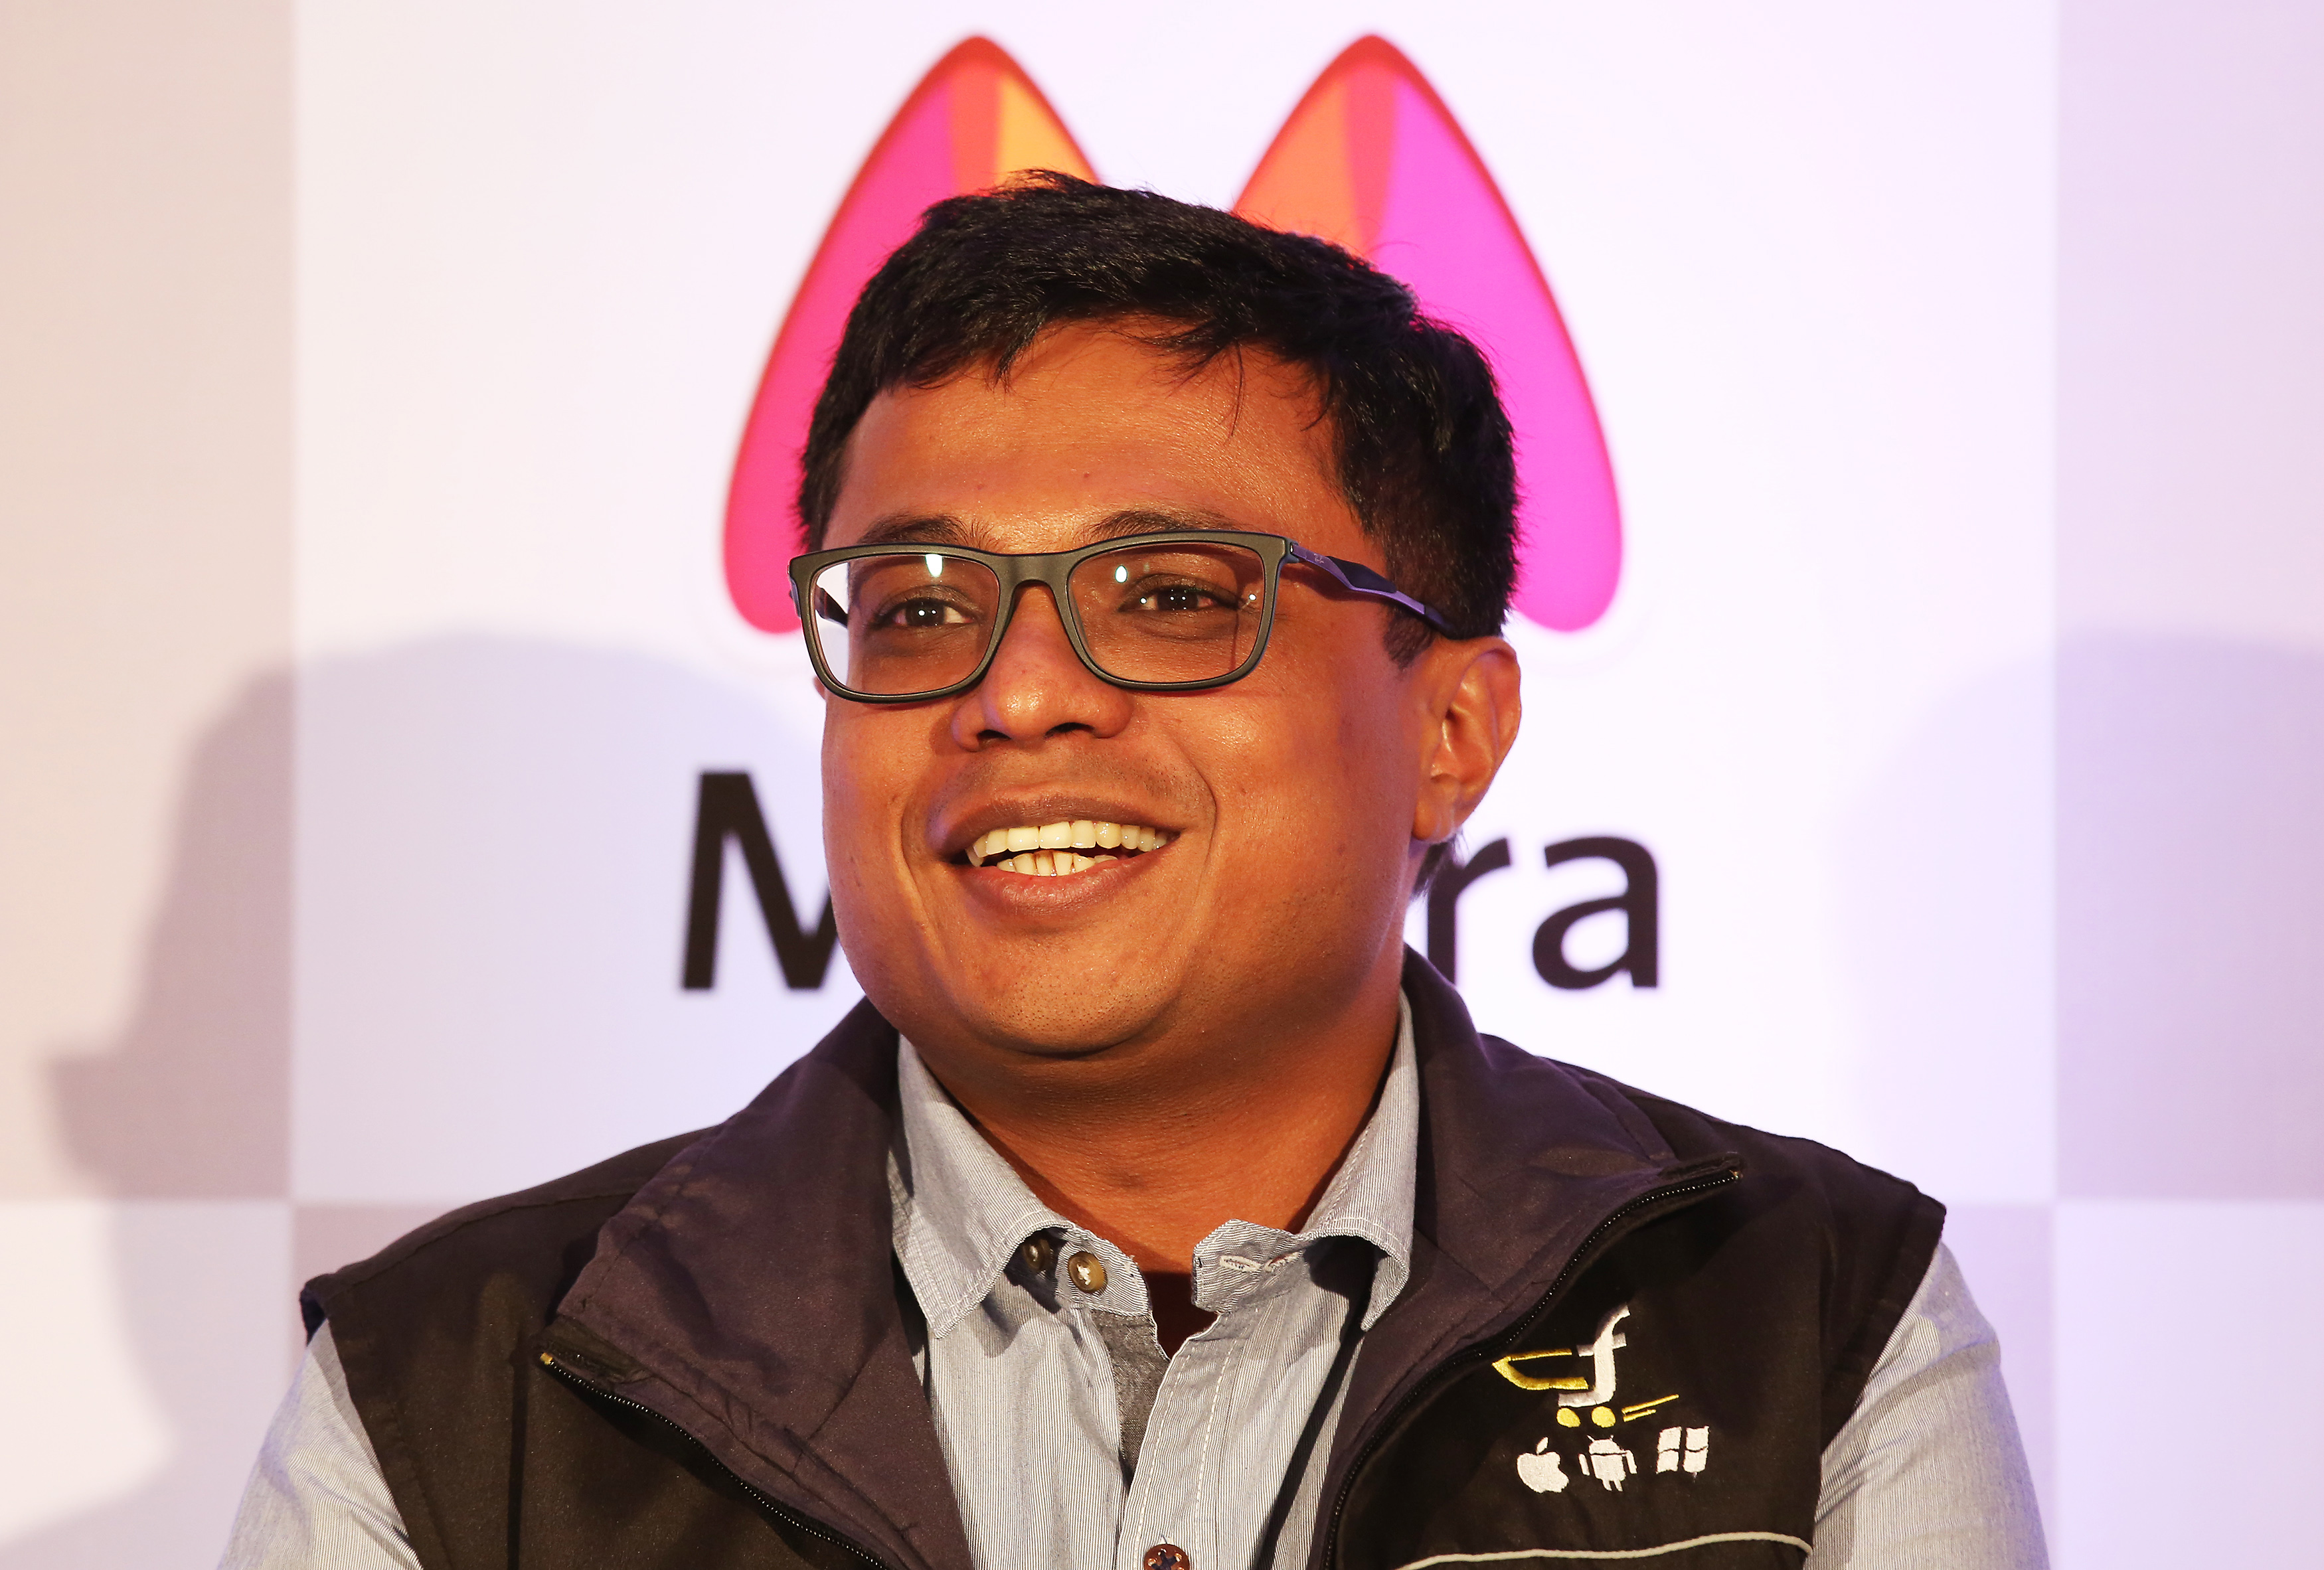 Flipkart CEO Sachin Bansal addresses a news conference in Bangalore, India, 12 May 2015. India?s e-commerce giants Flipkart and largest online fashion retailer Myntra will become a mobile app-only shopping platform starting 15 May, which intended to accelerate a consumer shift towards using smartphones to shop online, save cost and reduce dependence. The number of mobile Internet users in India is expected to reach 213 million by June, according to a 2014 report and it will be approximately 480 million mobile Internet users by end of 2017.